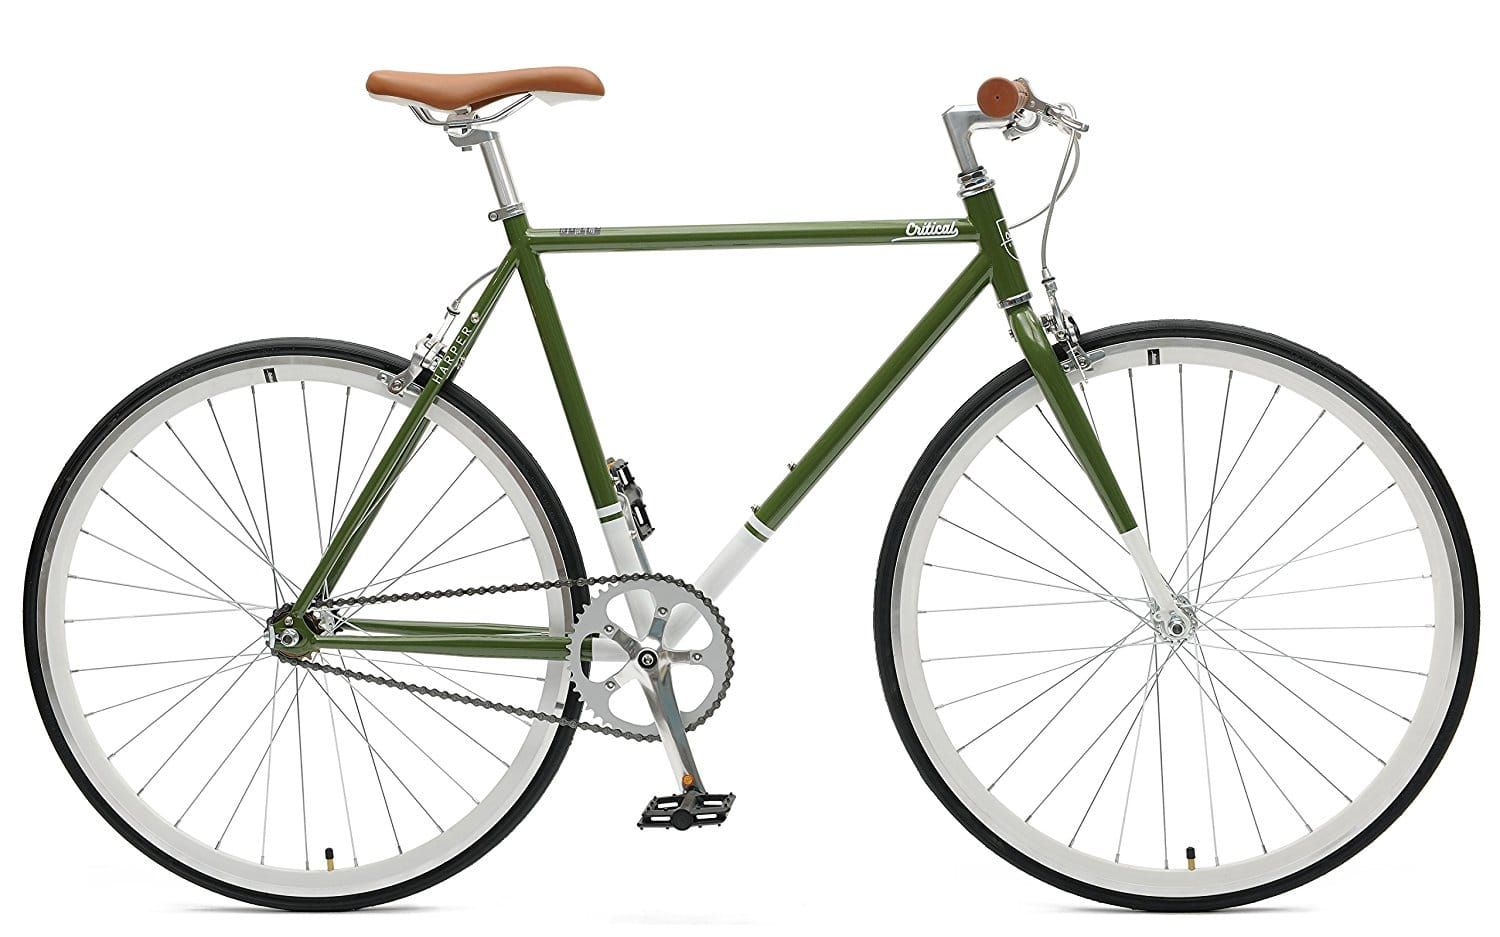 Top 10 Best Critical Cycles In 2020 Reviews Commuter Bike Speed